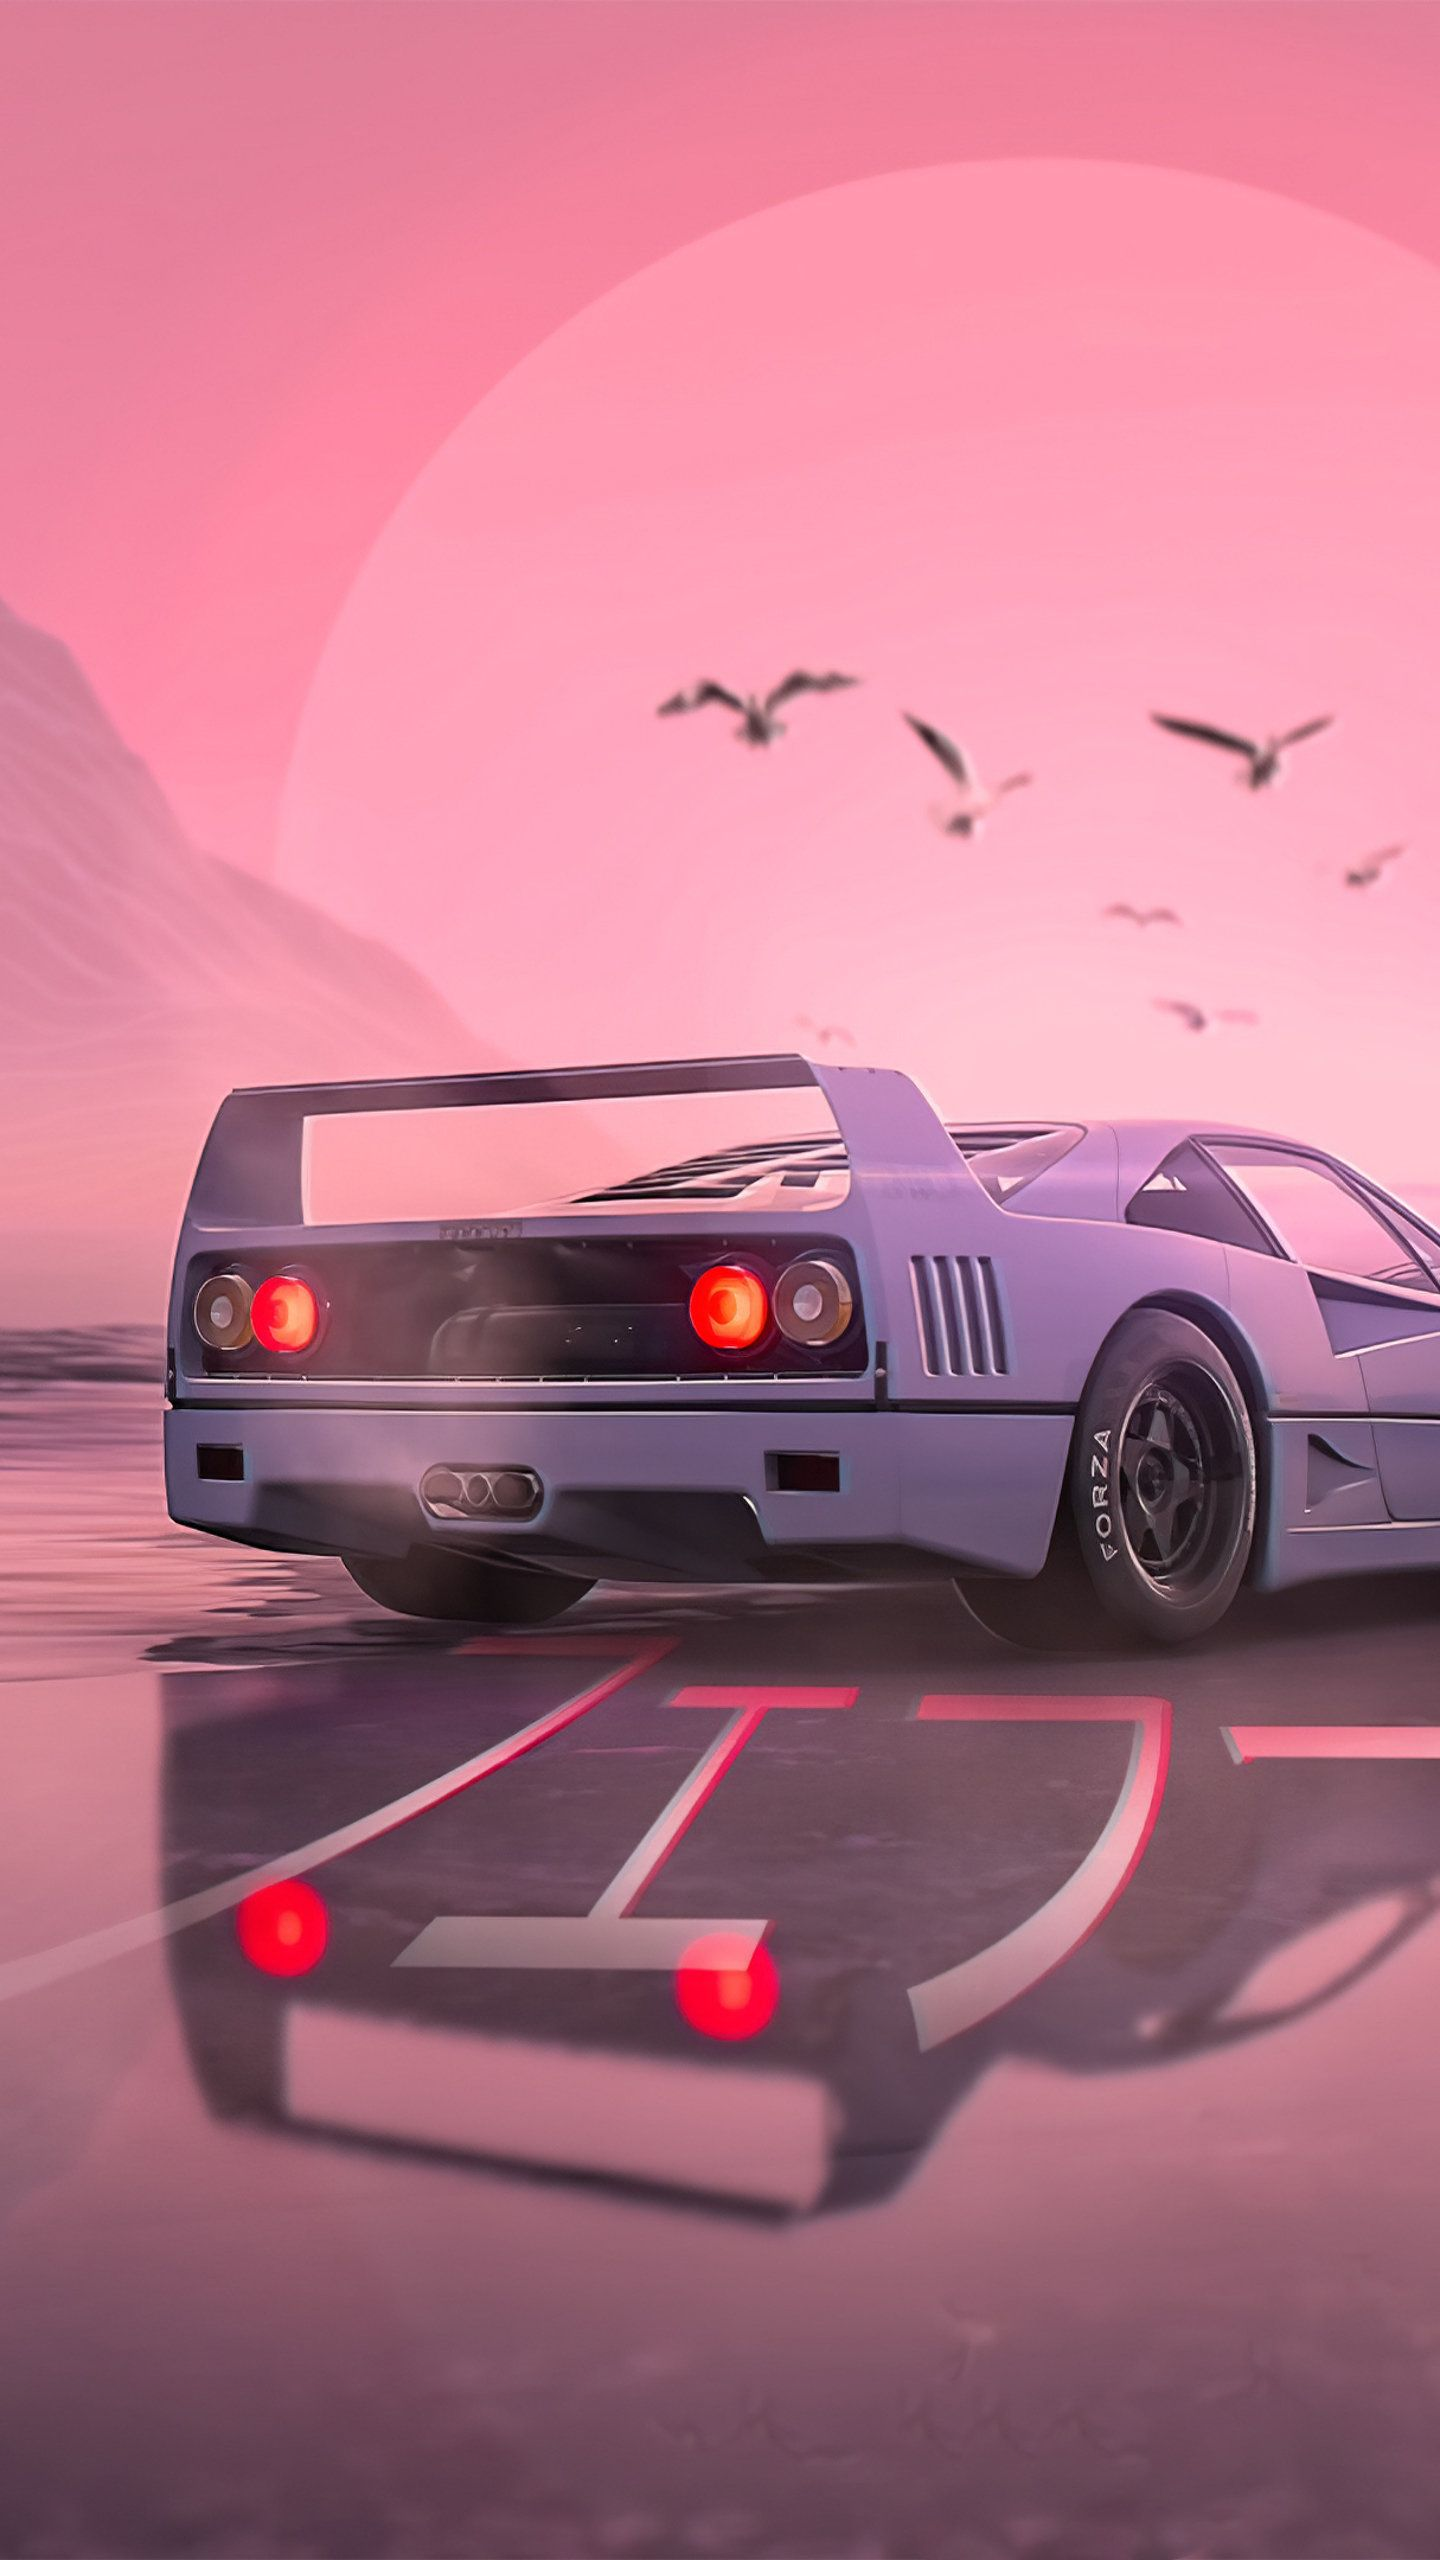 Retrowave Car 4k Hd Cars Wallpapers Photos And Pictures Wallpaper Car Wallpapers Retro Aesthetic